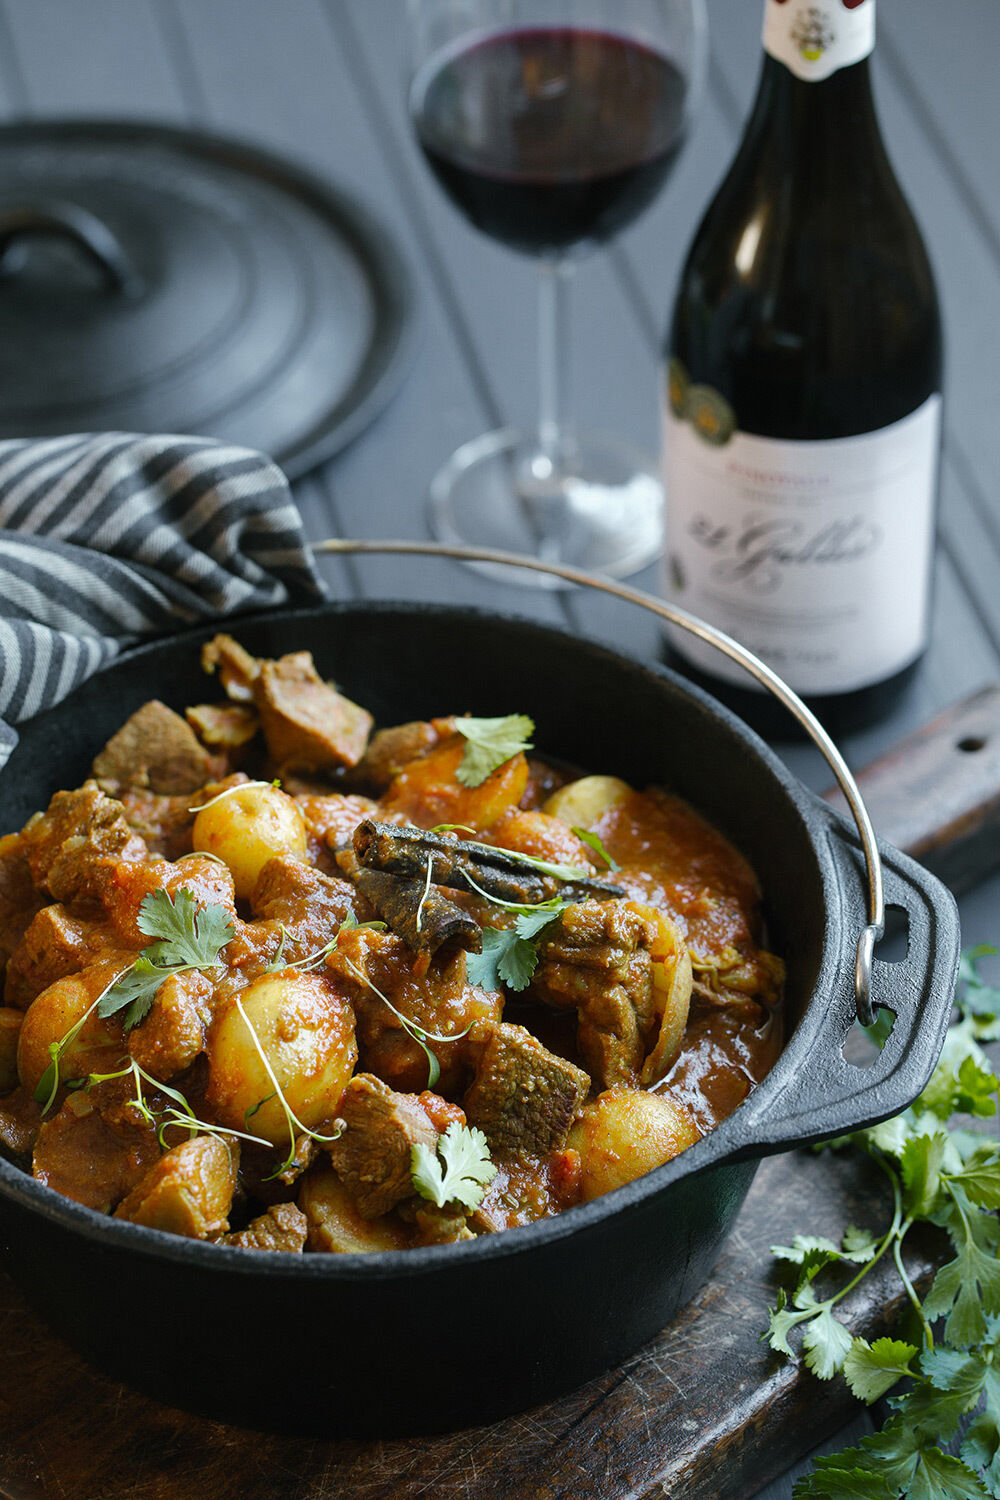 Cape-style lamb curry potjie